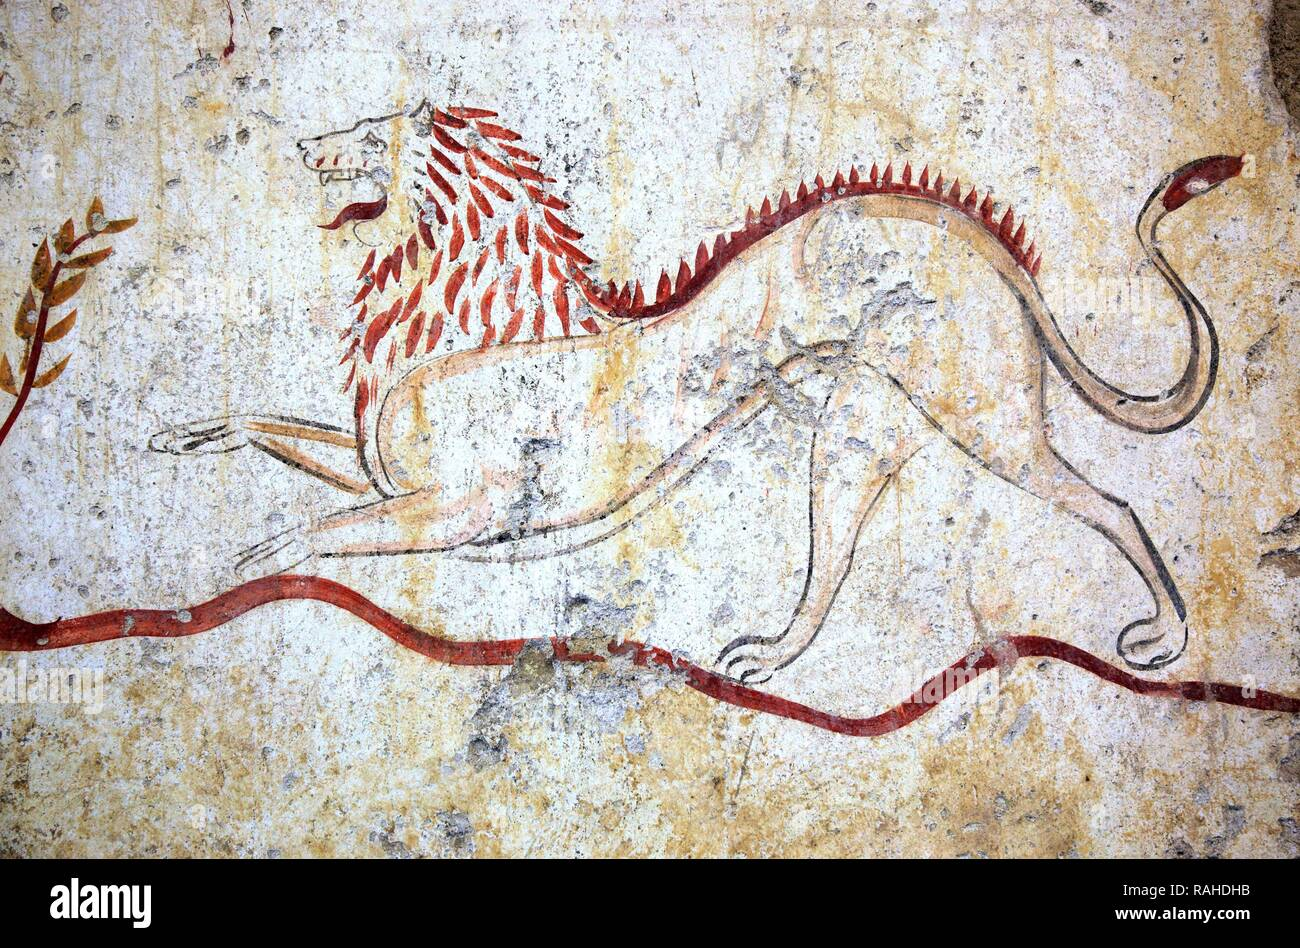 Tomb paintings in a chamber tomb, about 480 BC, Lucan times, at the Museum of Paestum, Campania, Italy, Europe - Stock Image